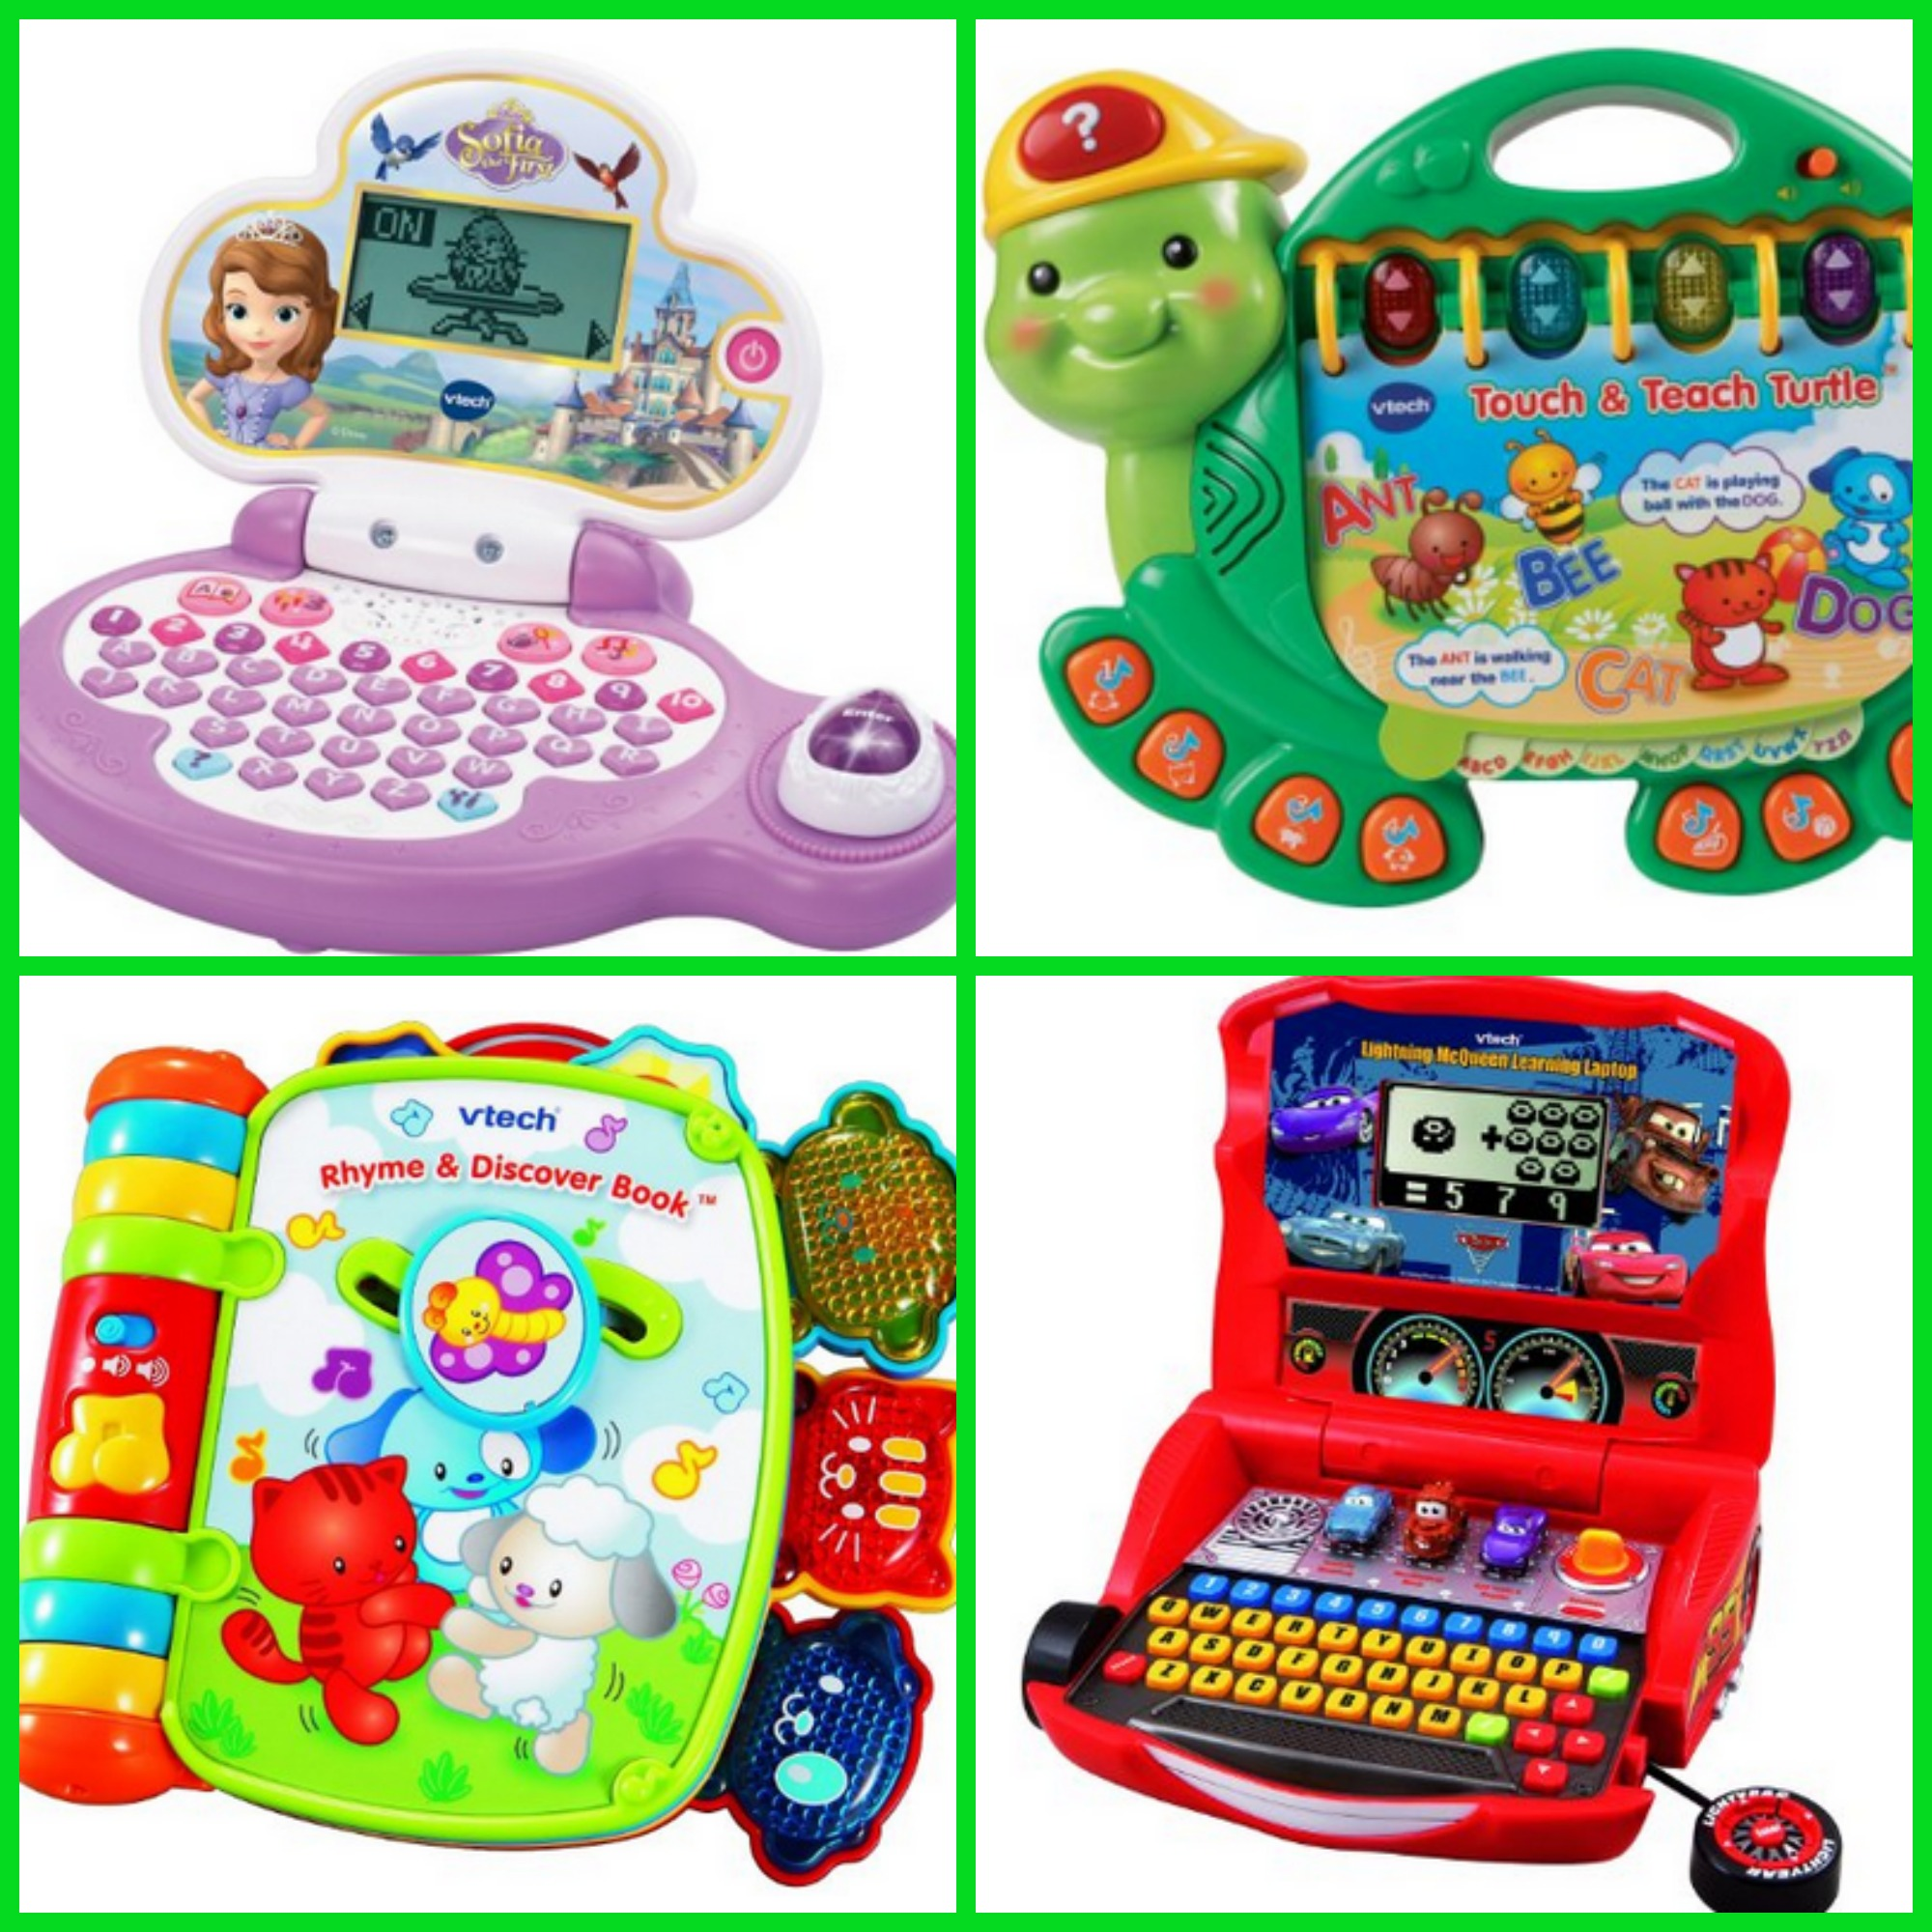 VTech Toys 50% off at Amazon Today The Happy Housewife™ Deals